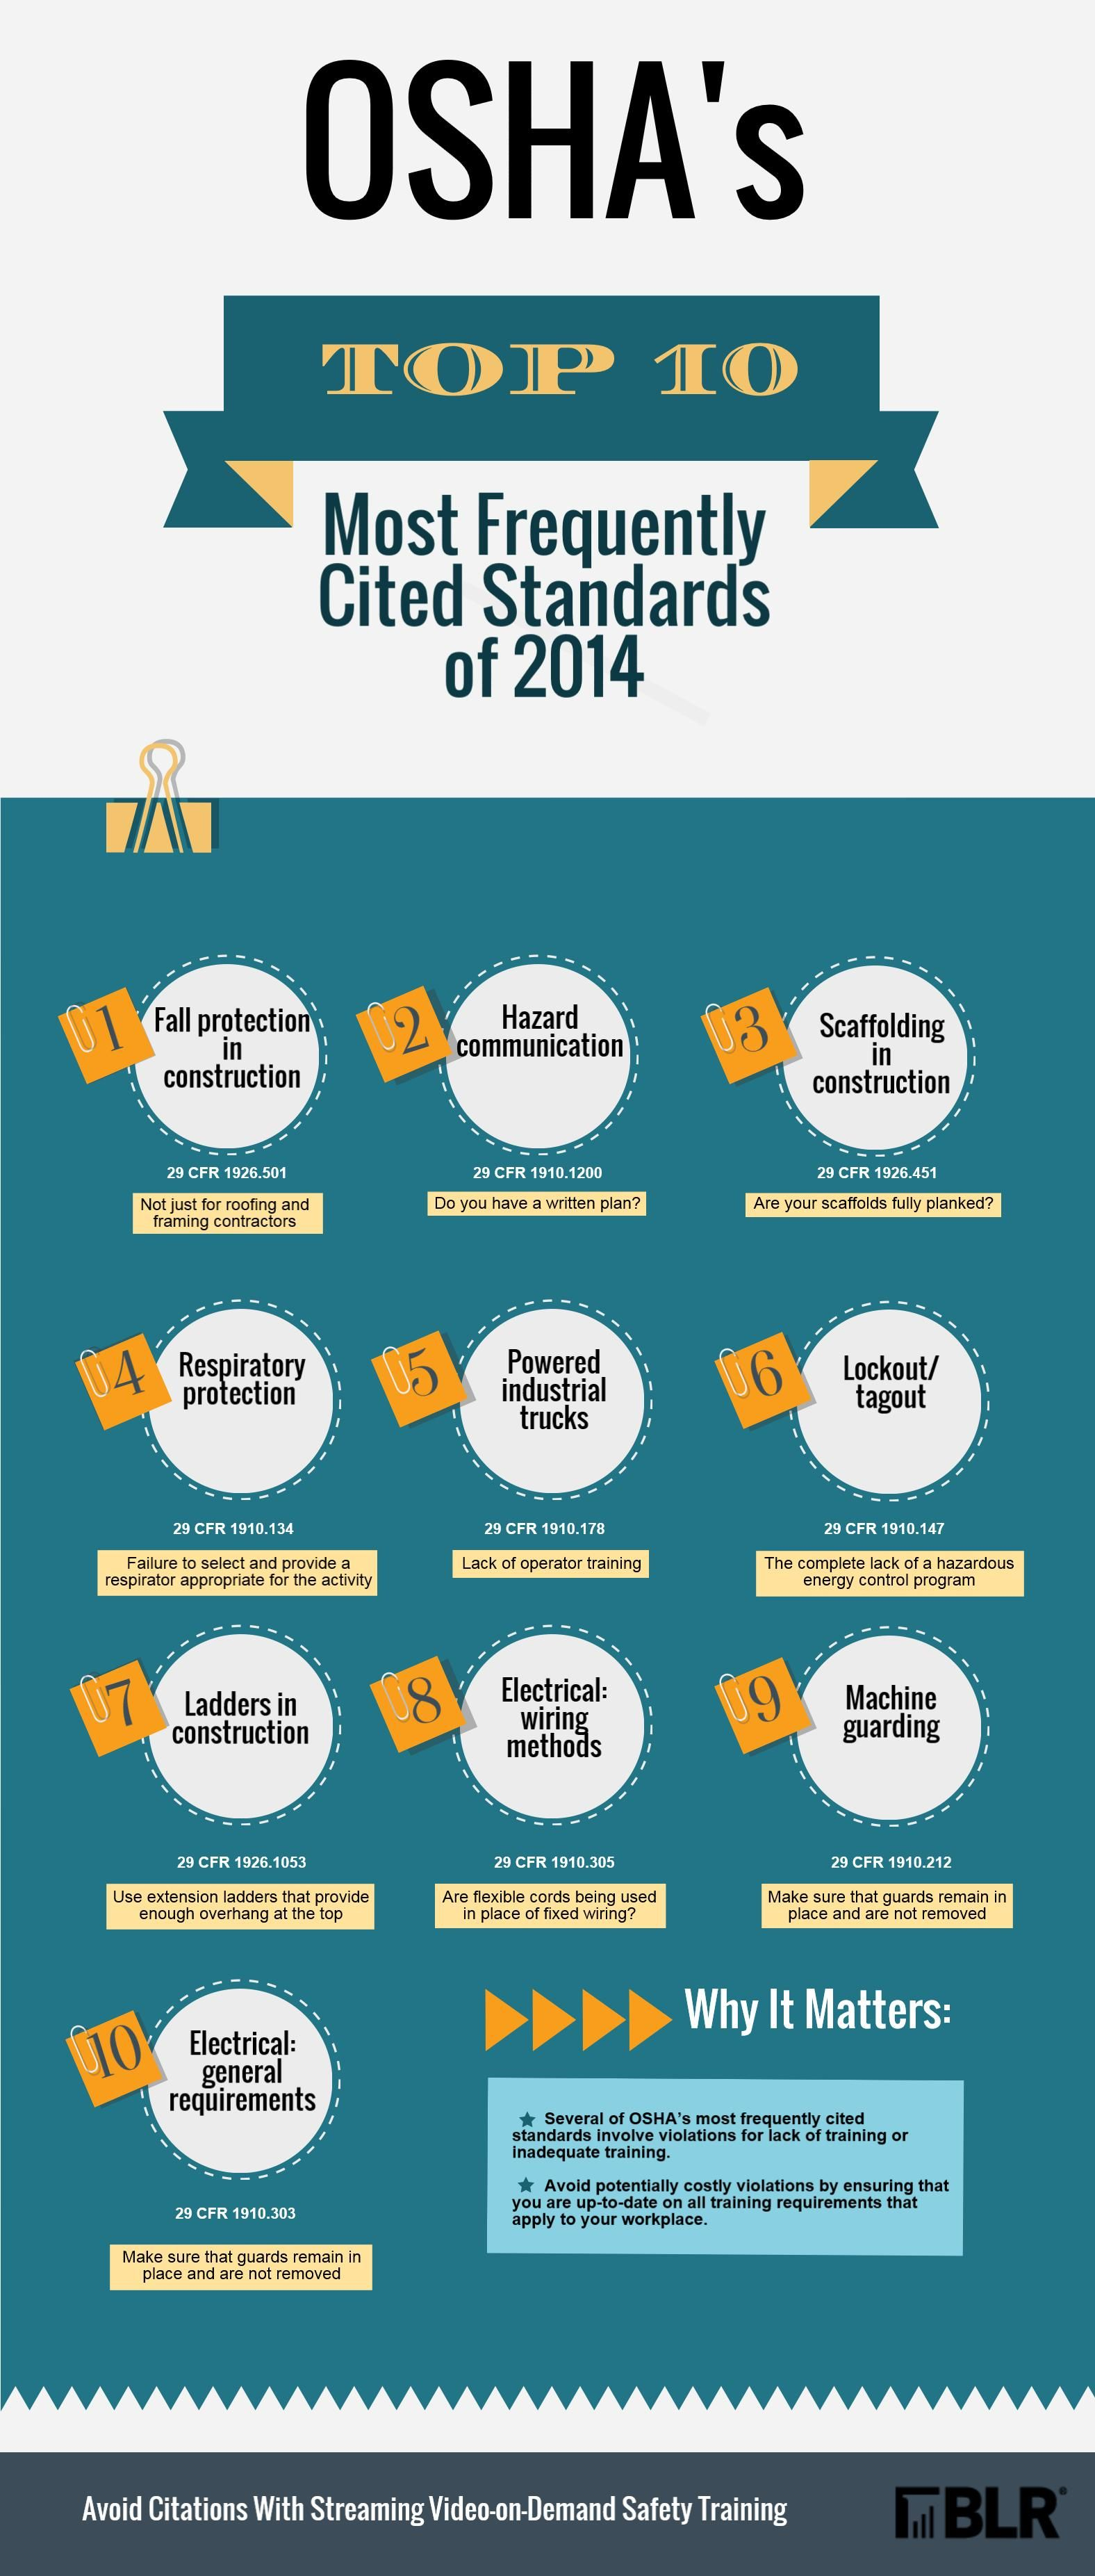 Infographic OSHA's Top 10 Most Frequently Cited Standards